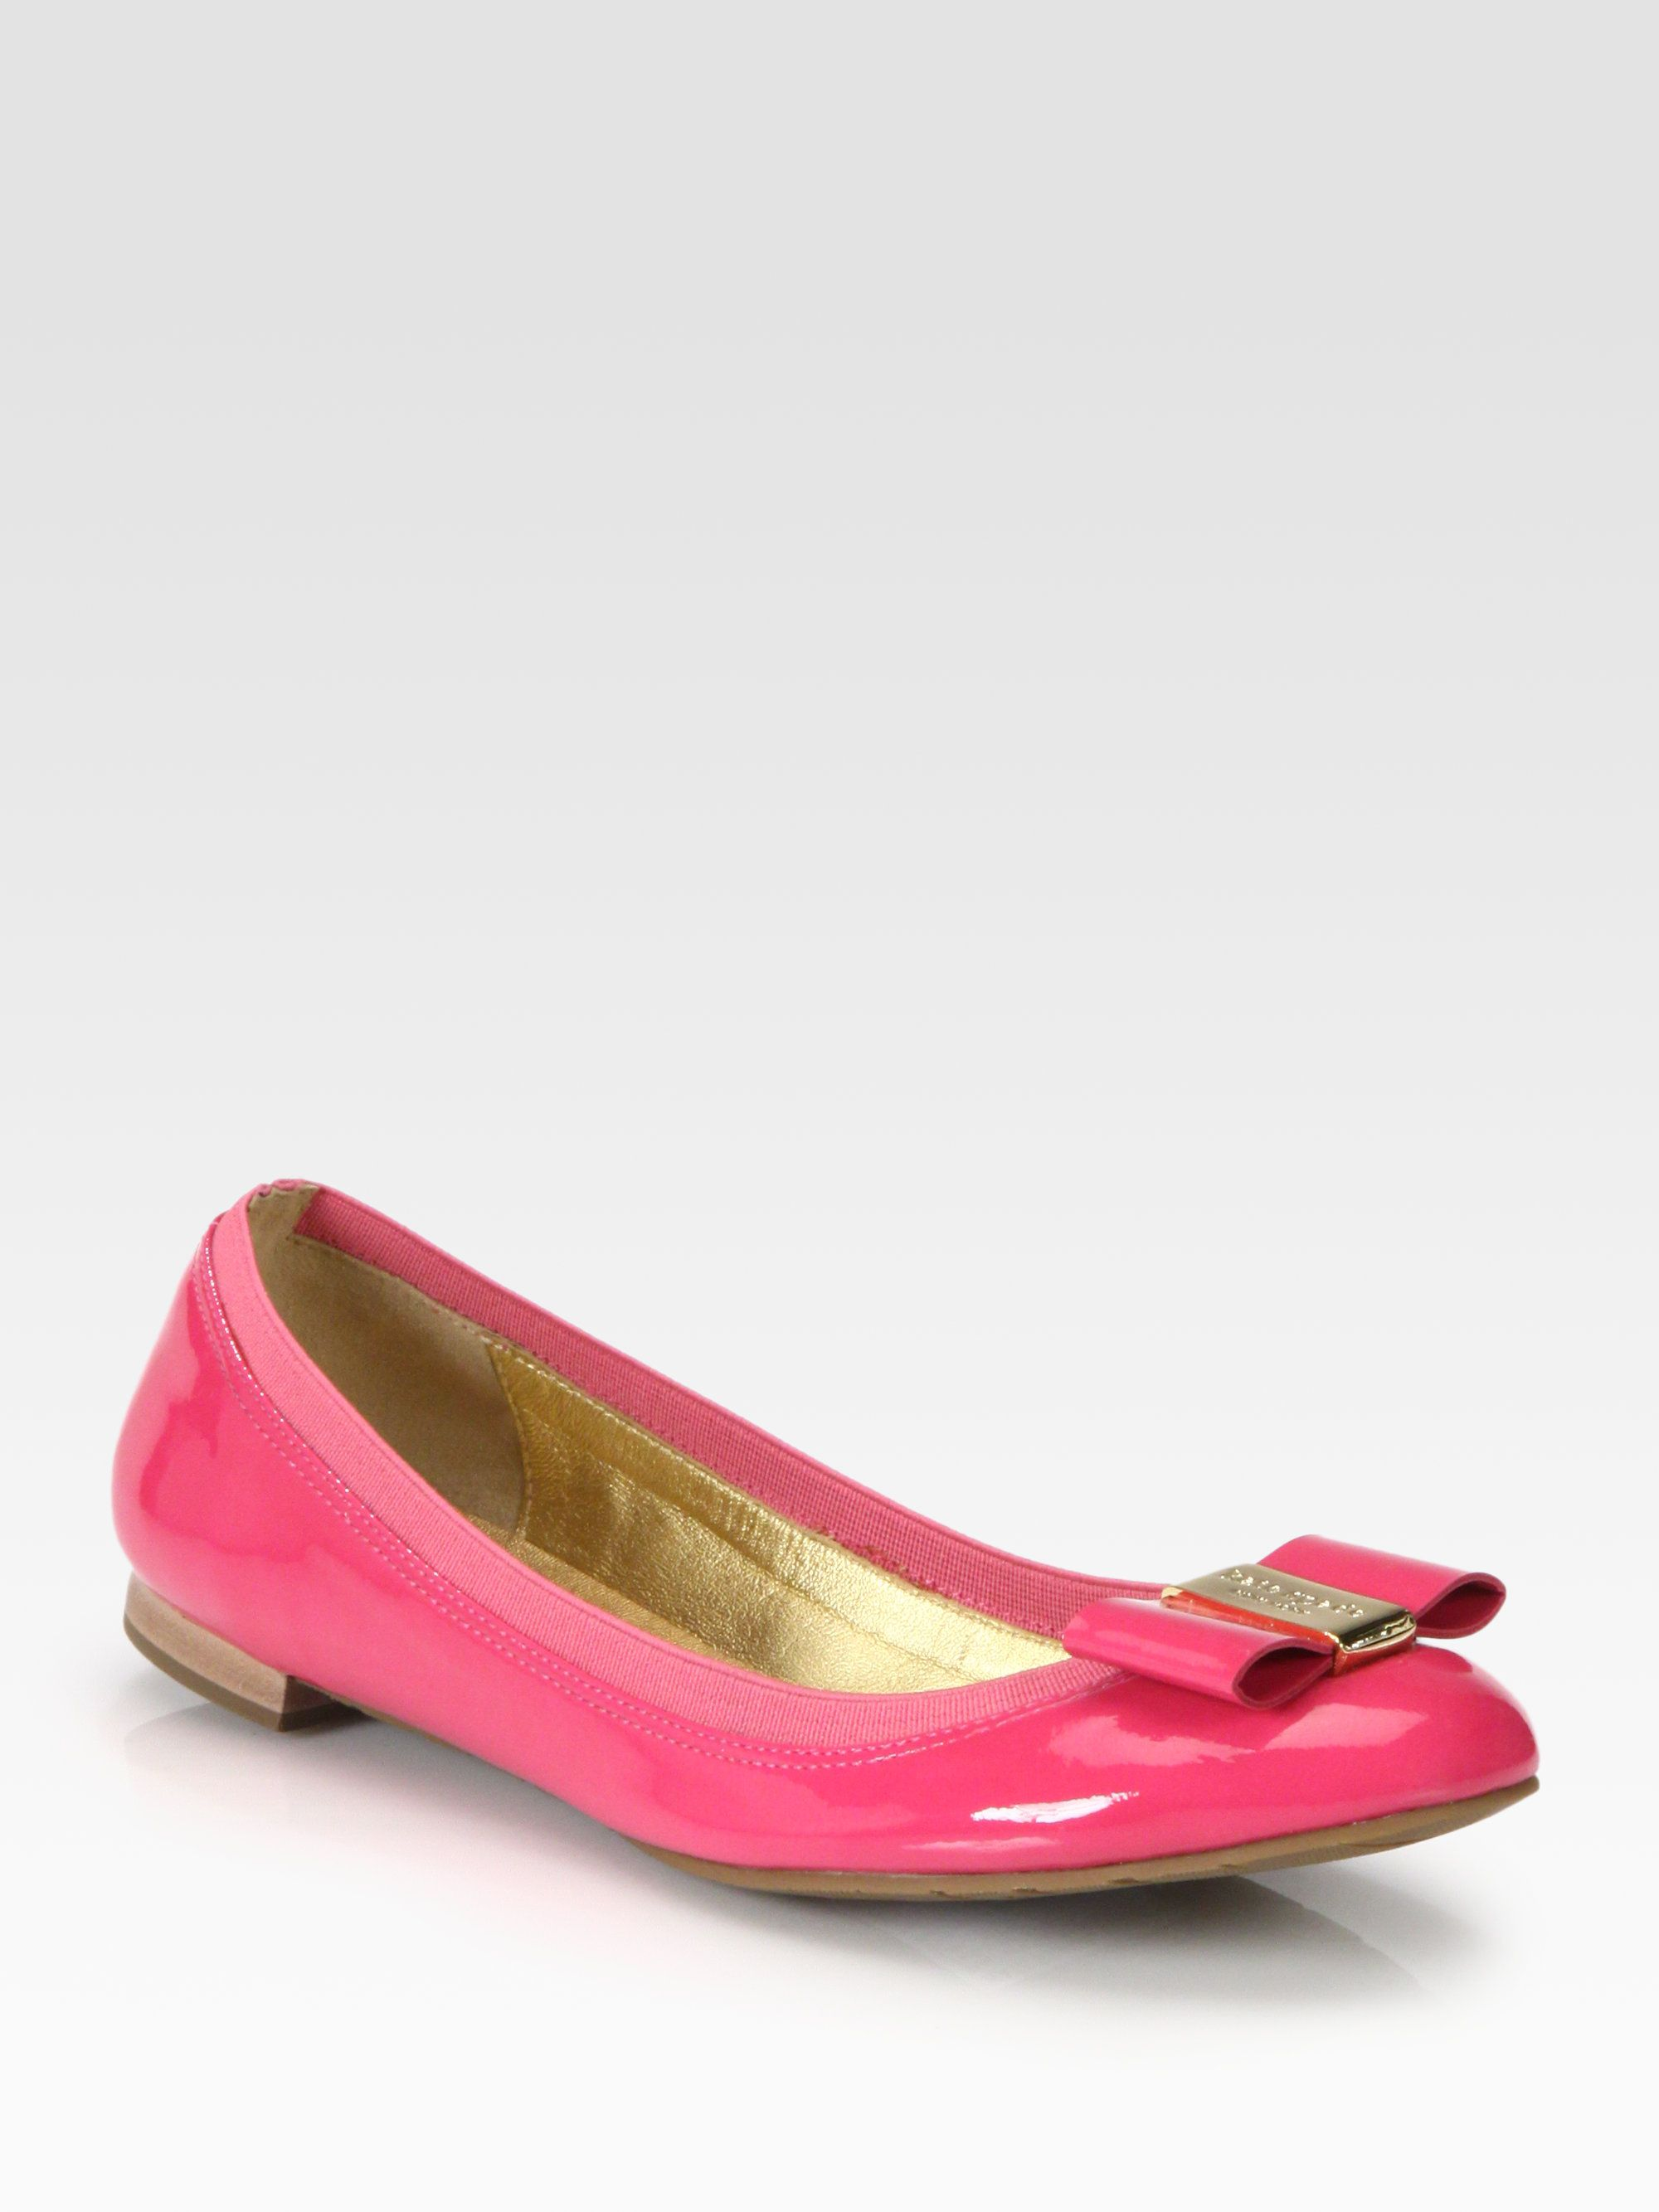 1339a6771c46 Kate Spade Tock Patent Leather Bow Ballet Flats in Pink